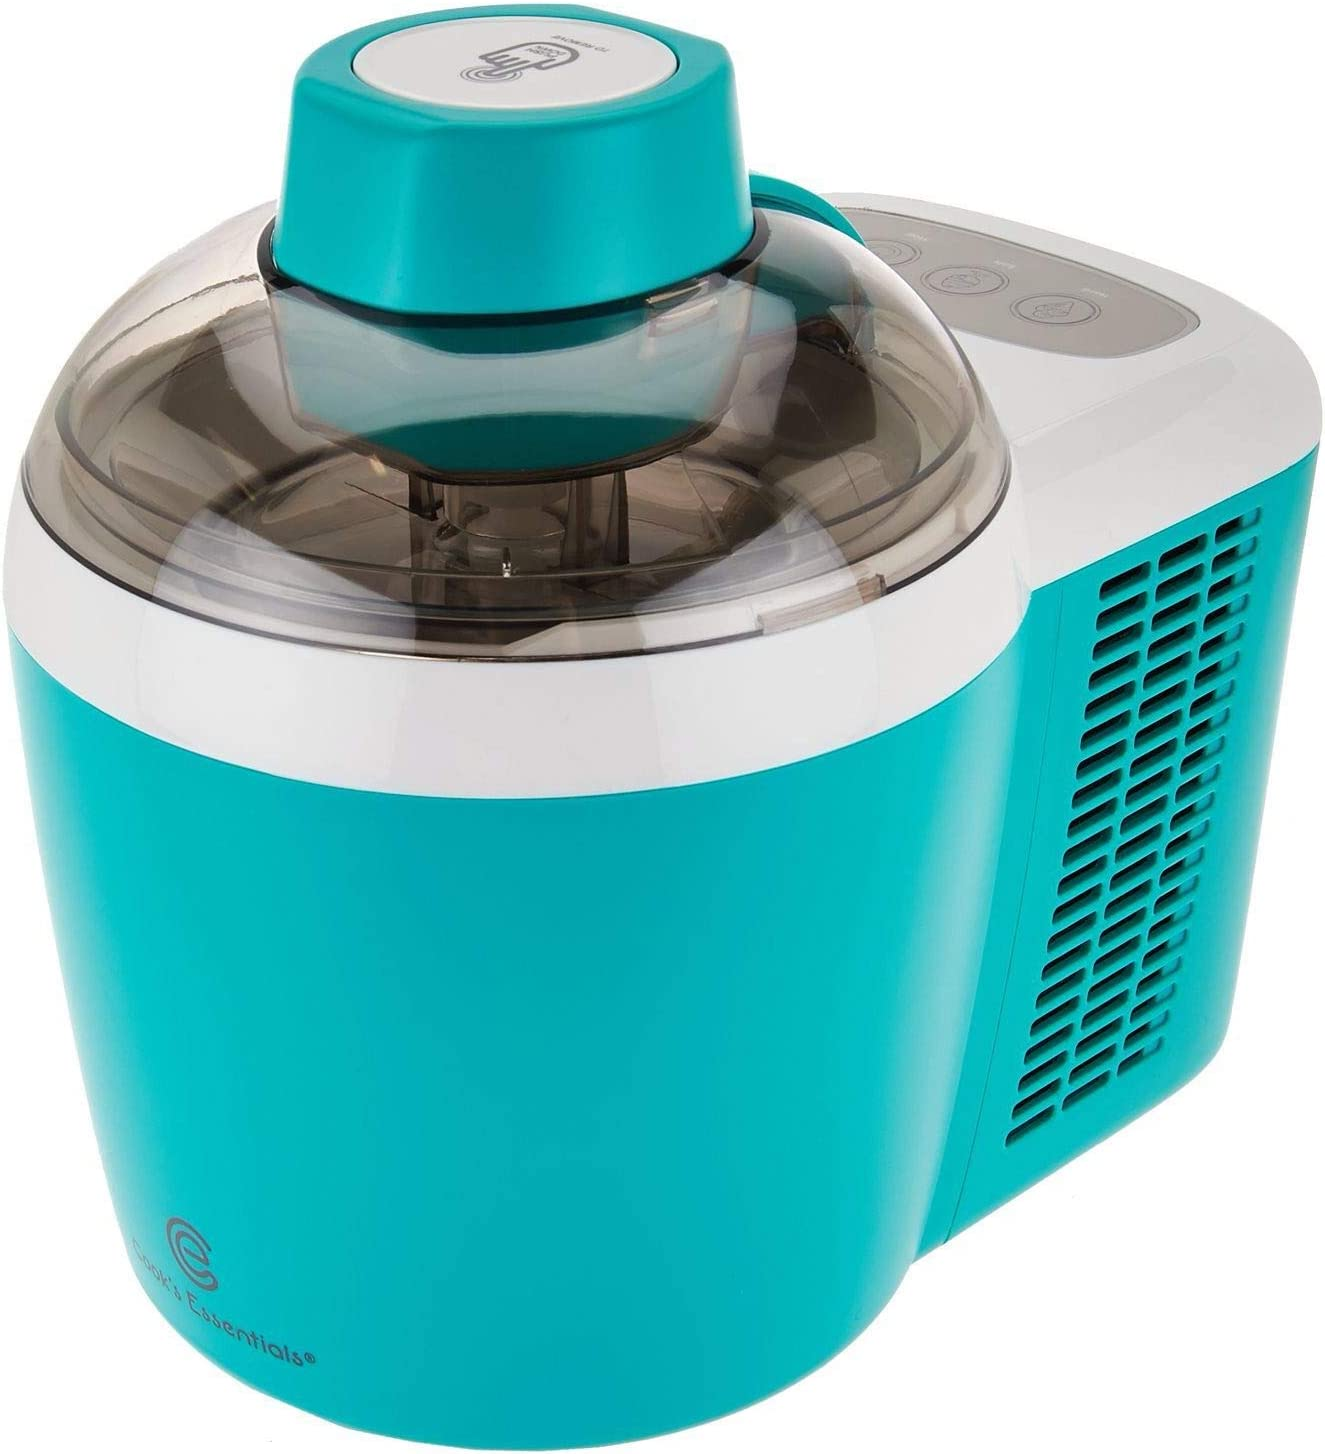 Cooks Essentials Ice Cream Maker Powerful 90W Motor Thermo Electric Self-Freezing System K45559191000 (Renewed)